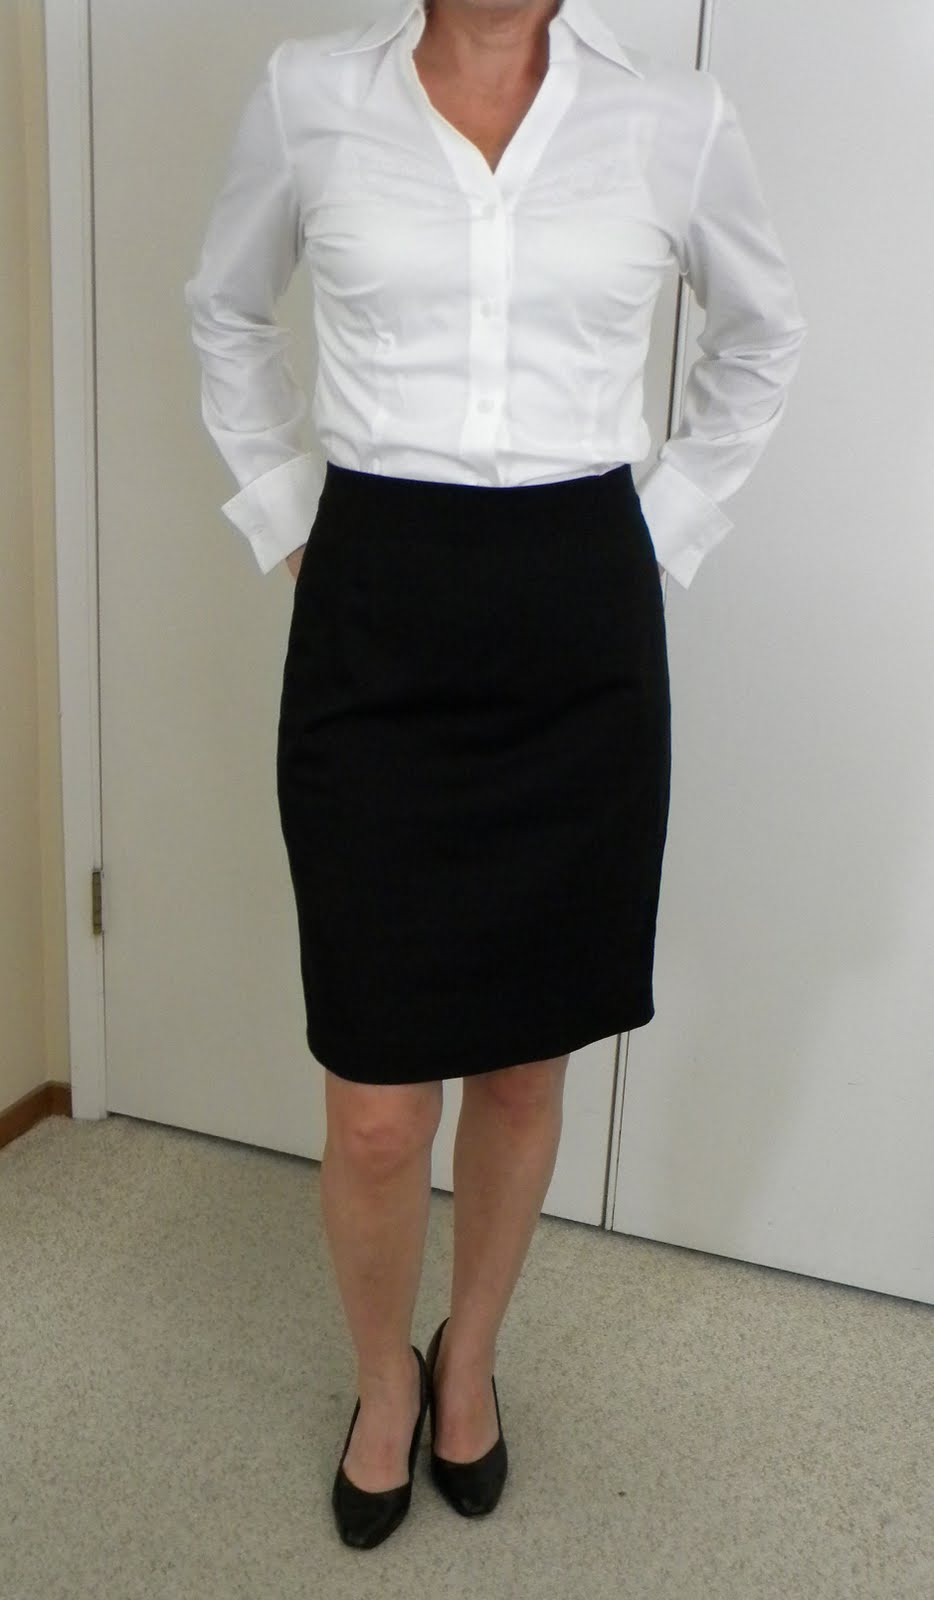 White Blouse For Pencil Skirt 36